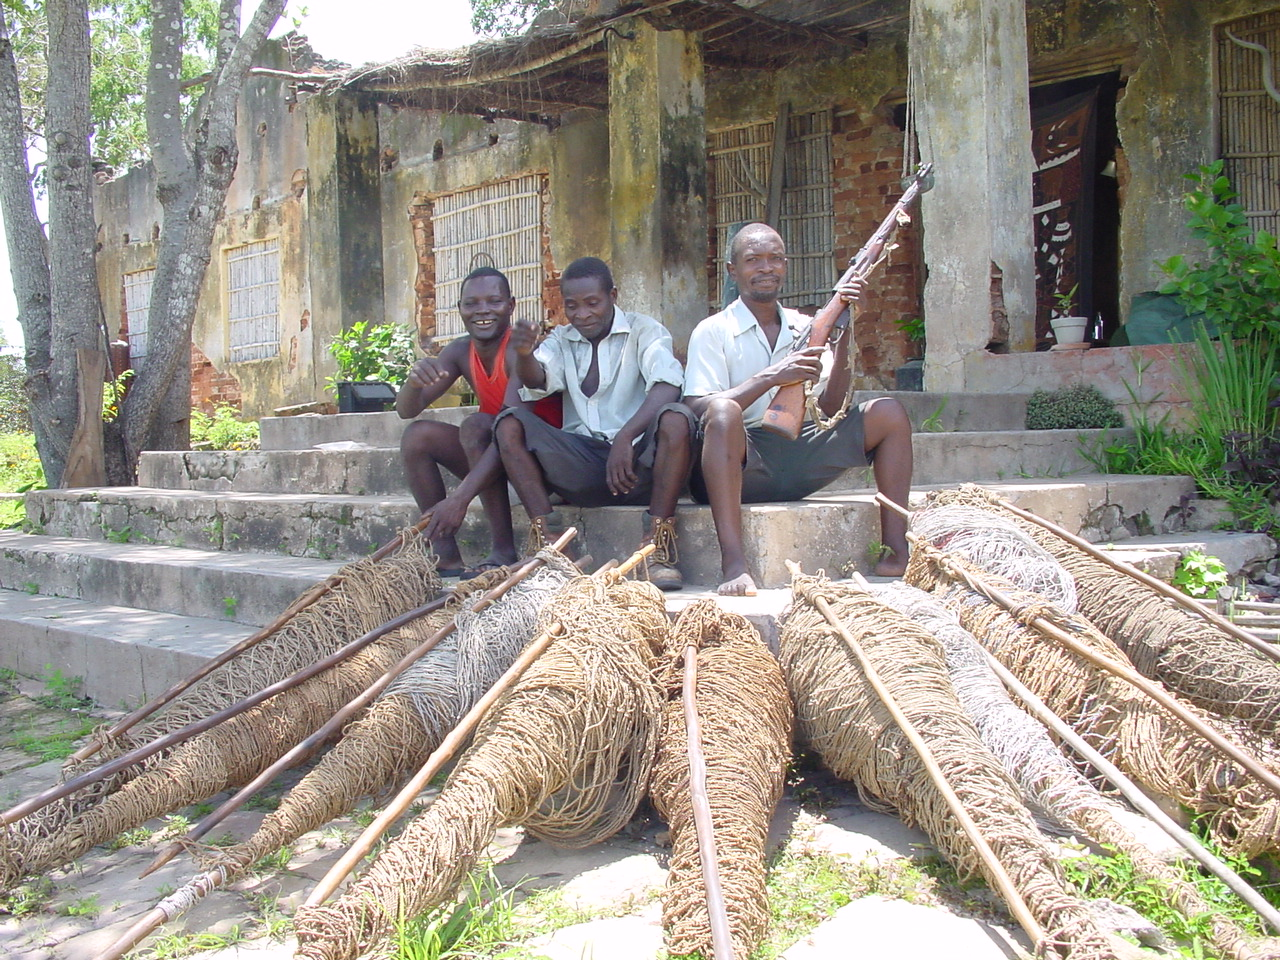 aug-02-Nets confiscated by com rangers Mareja